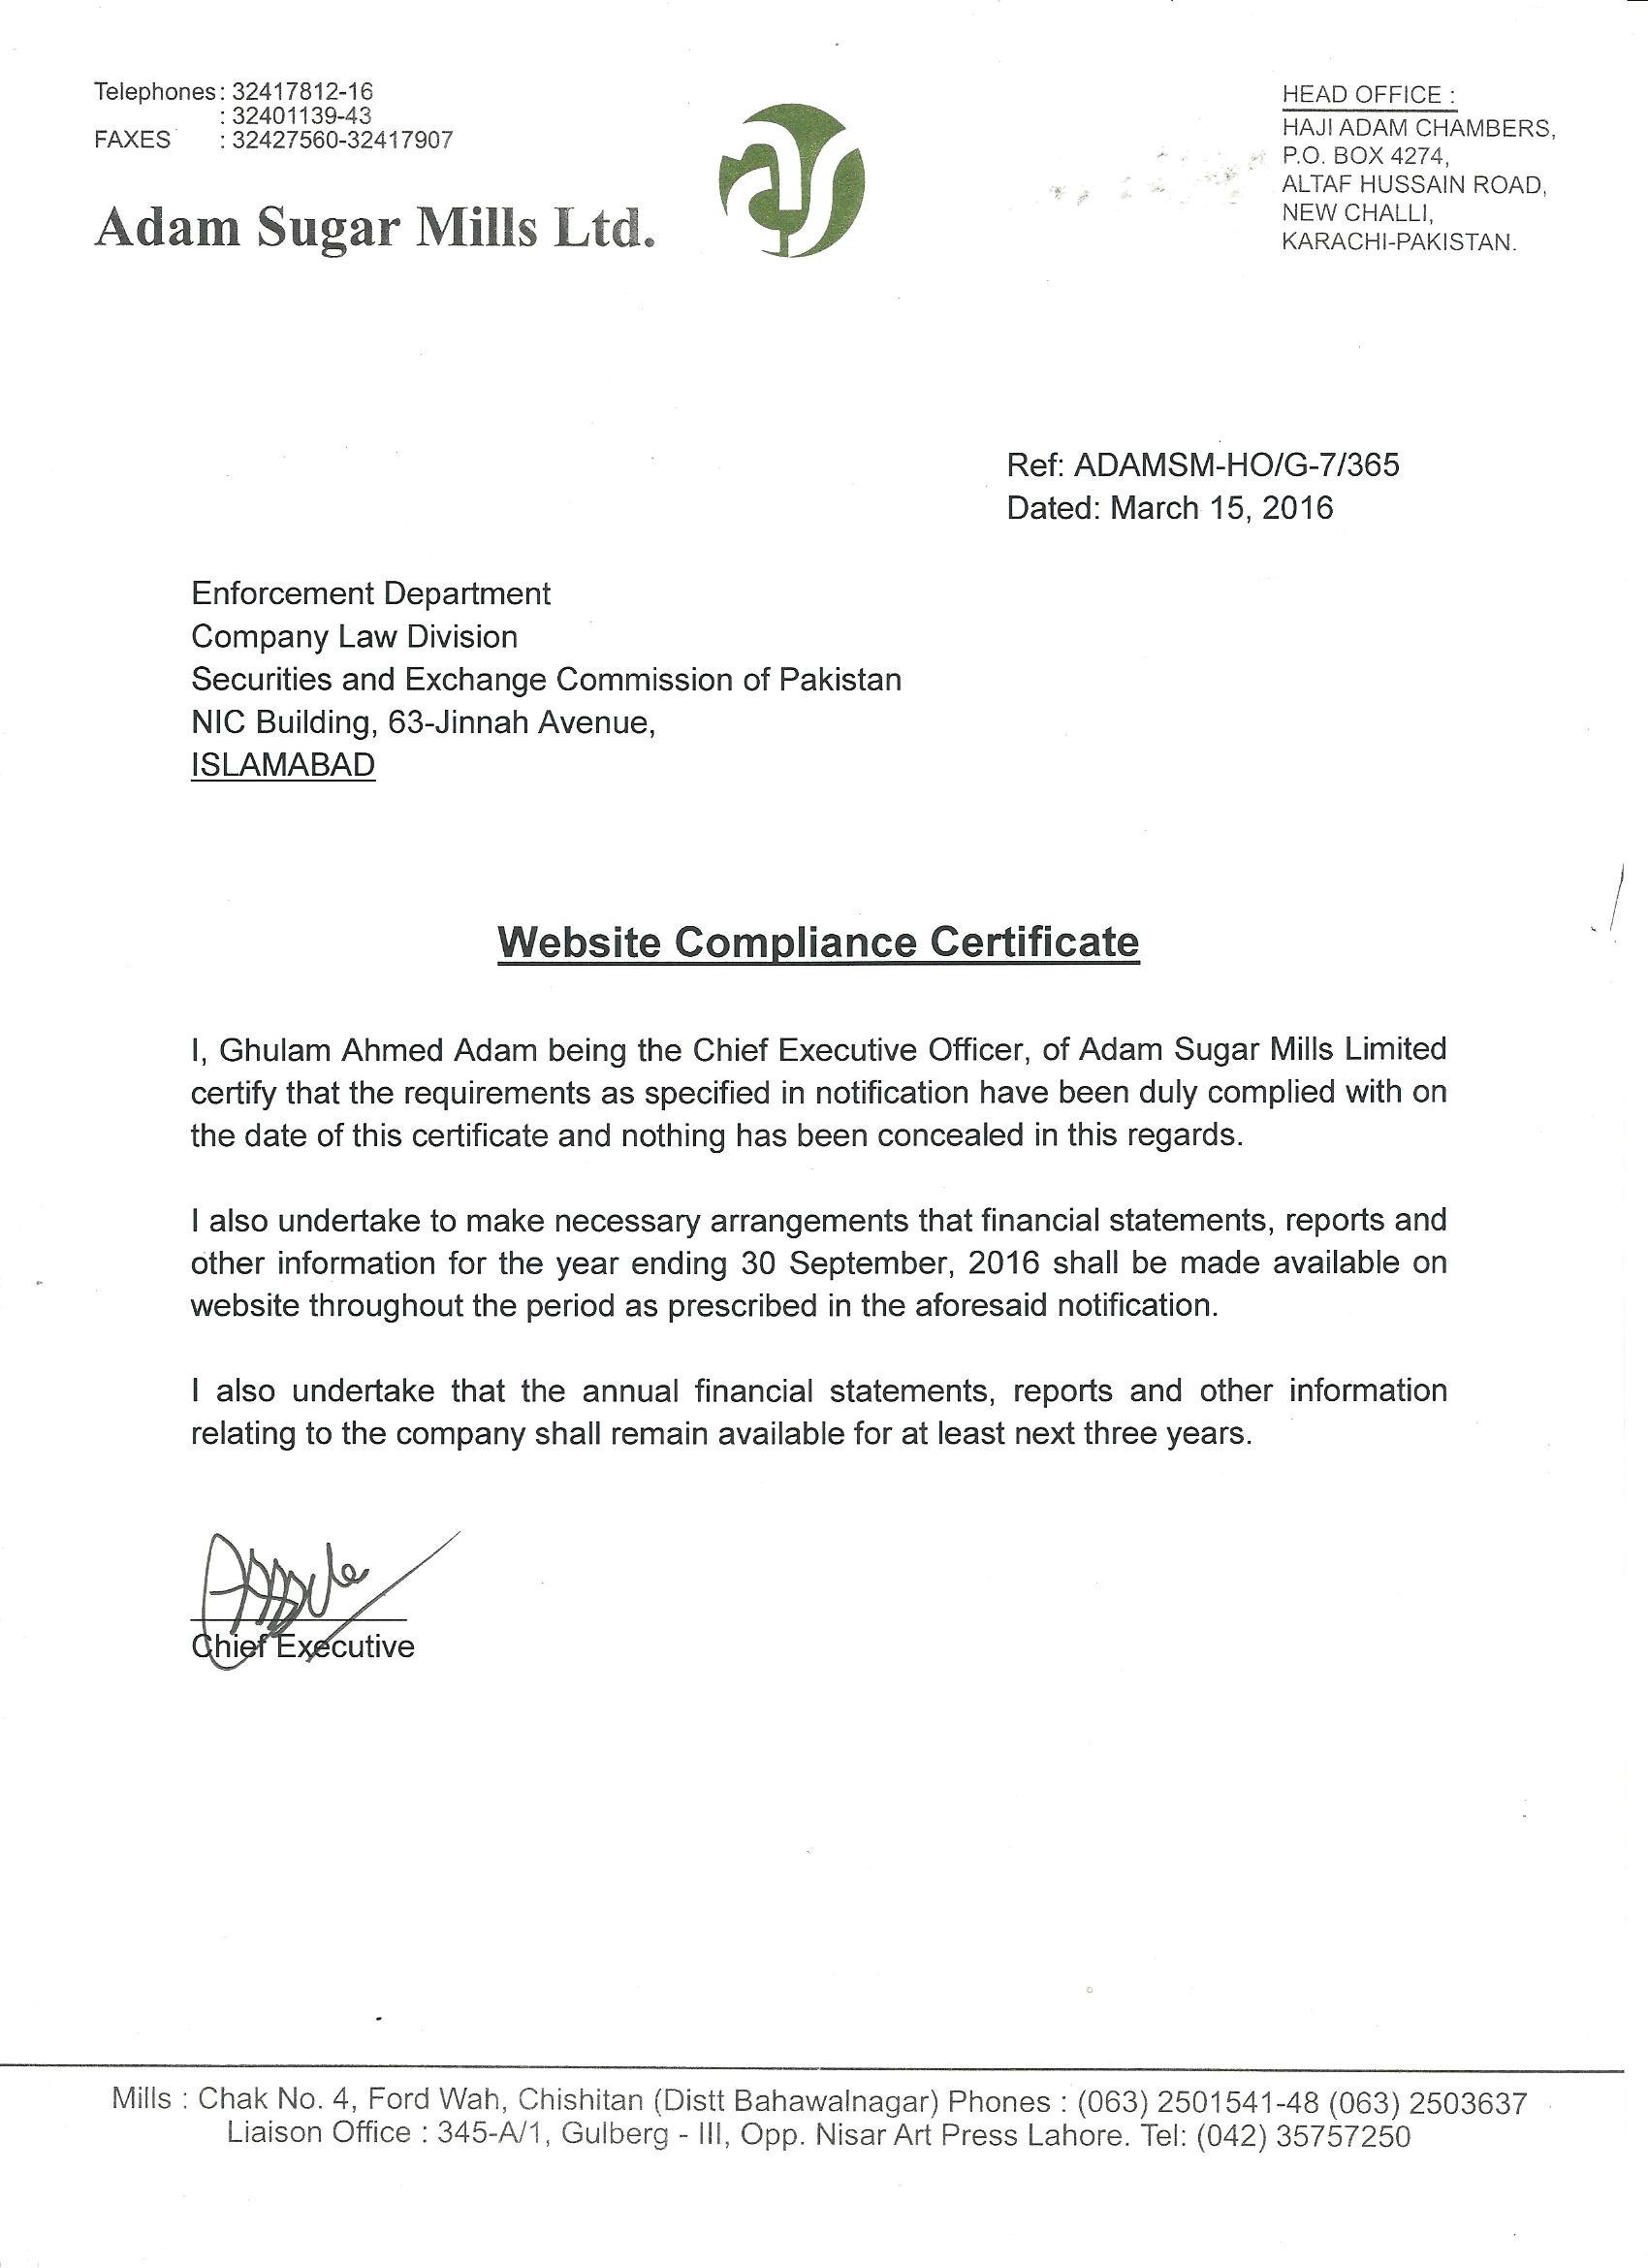 Adam Group Adam Sugar Limited Compliance Certificate